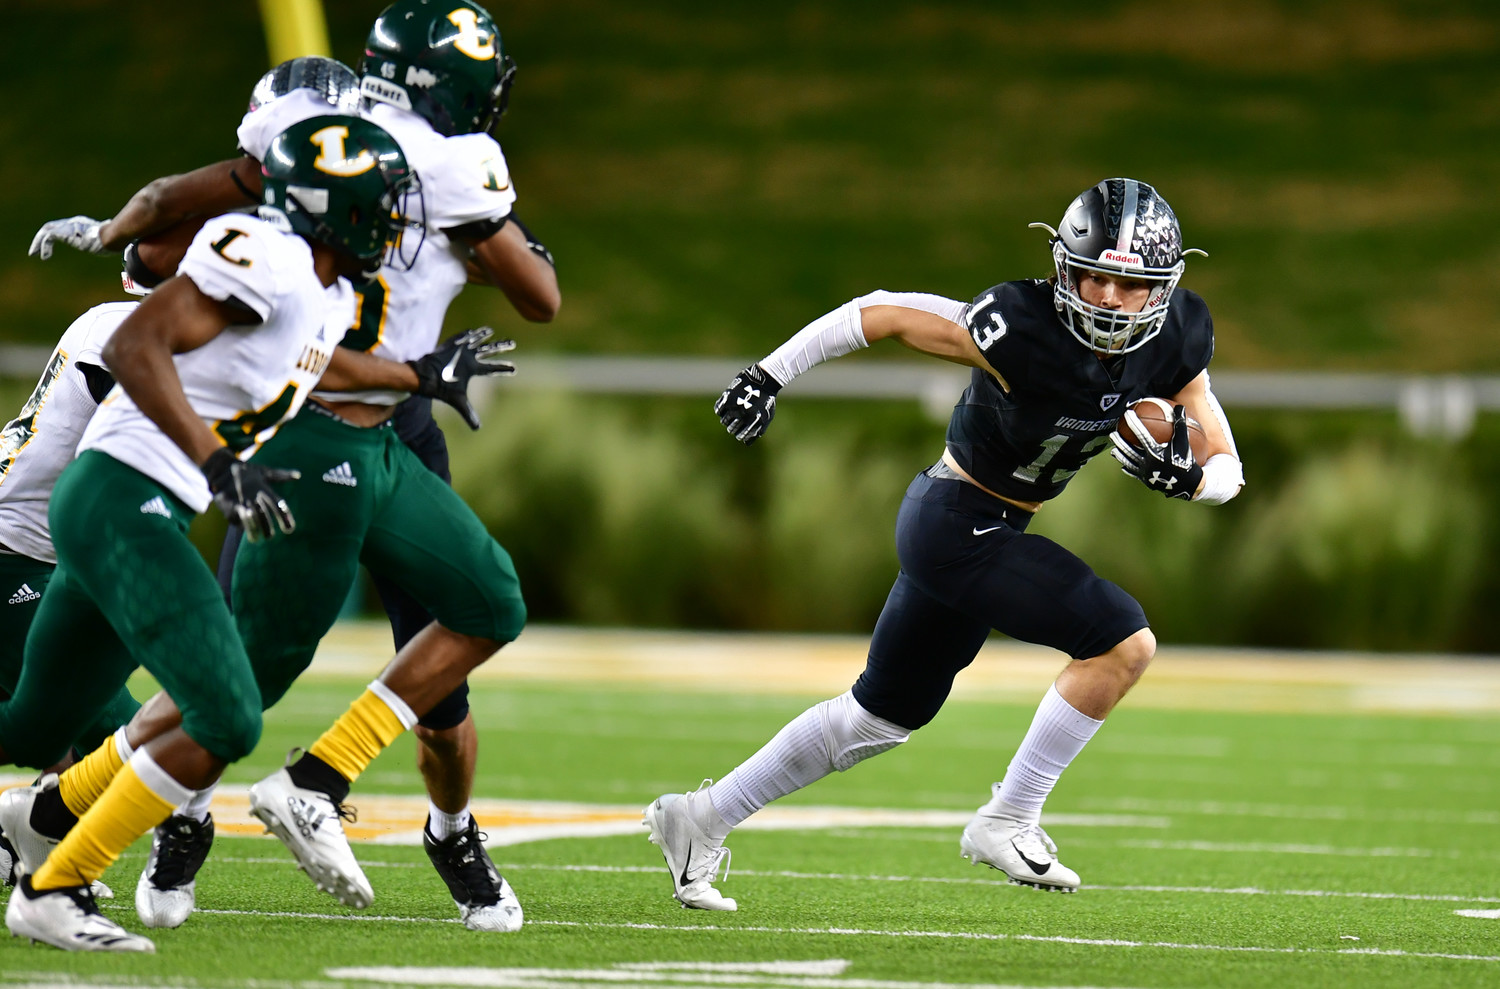 Trey Mongauzy and Vandegrift fell to Longview 56-28 in the regional semifinals Saturday at McLane Stadium in Waco.